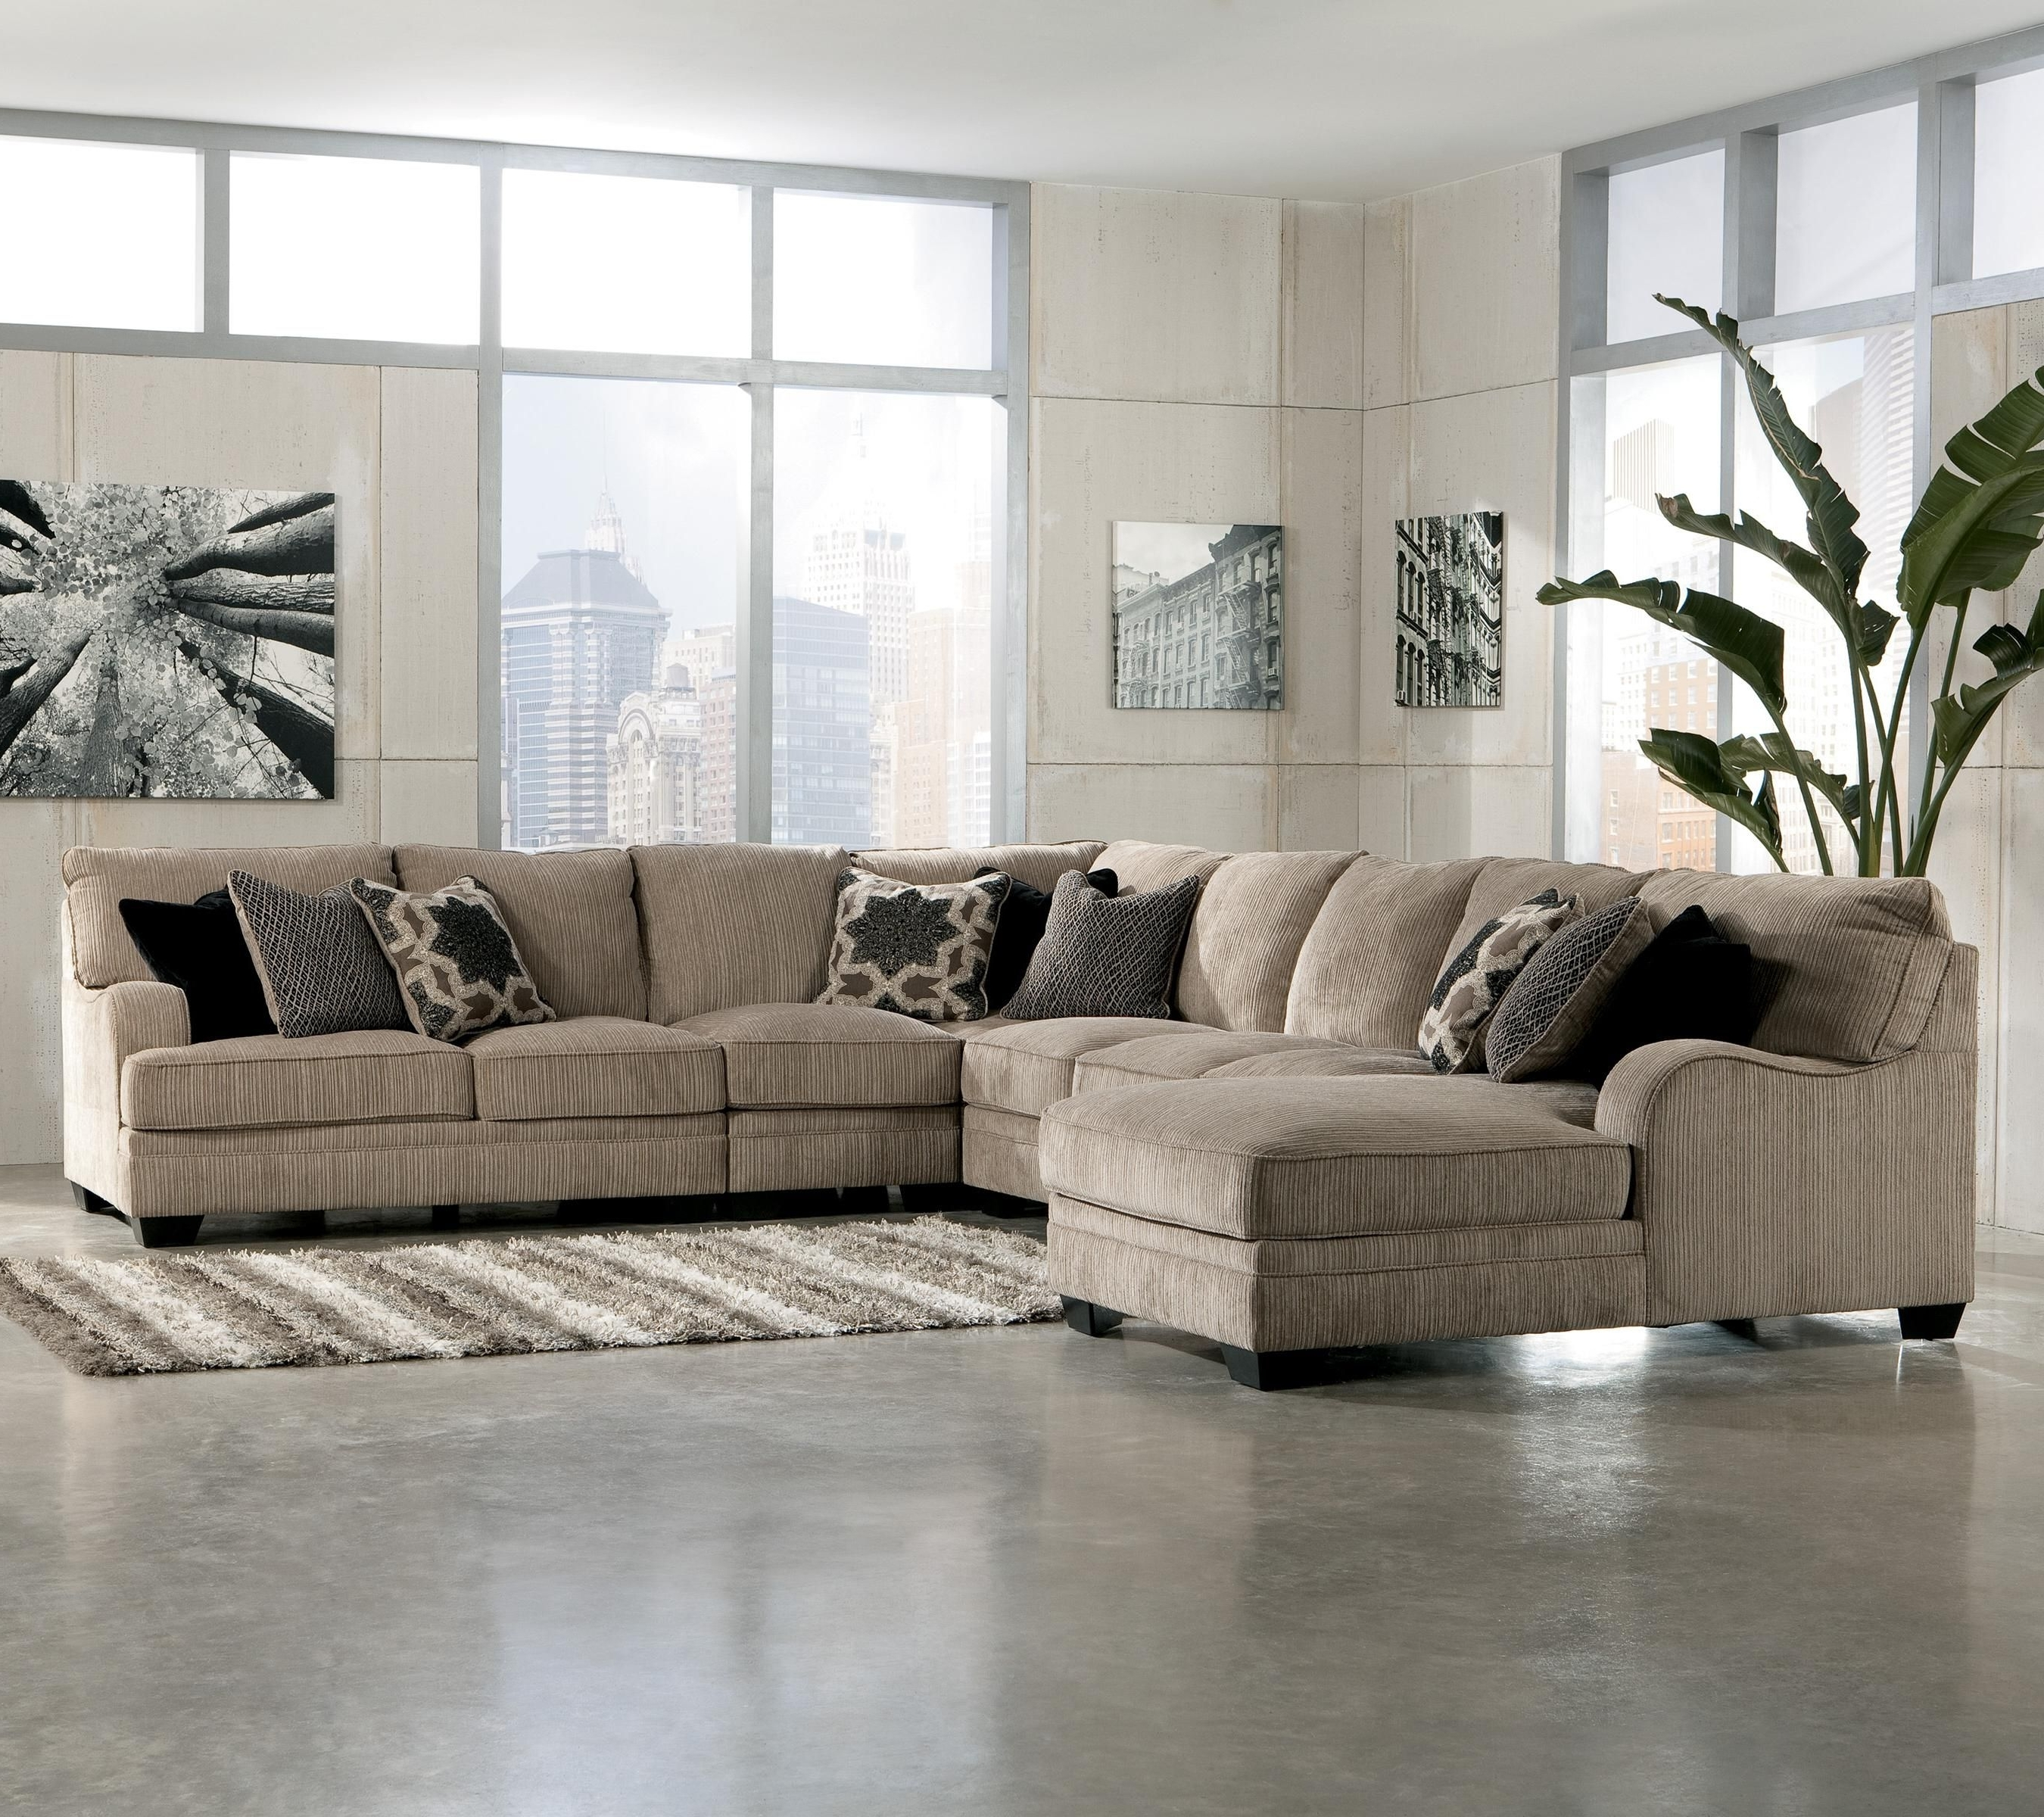 Jackson Tn Sectional Sofas Intended For 2019 Living Room Sectional: Katisha 4 Piece Sectionalashley (View 8 of 20)